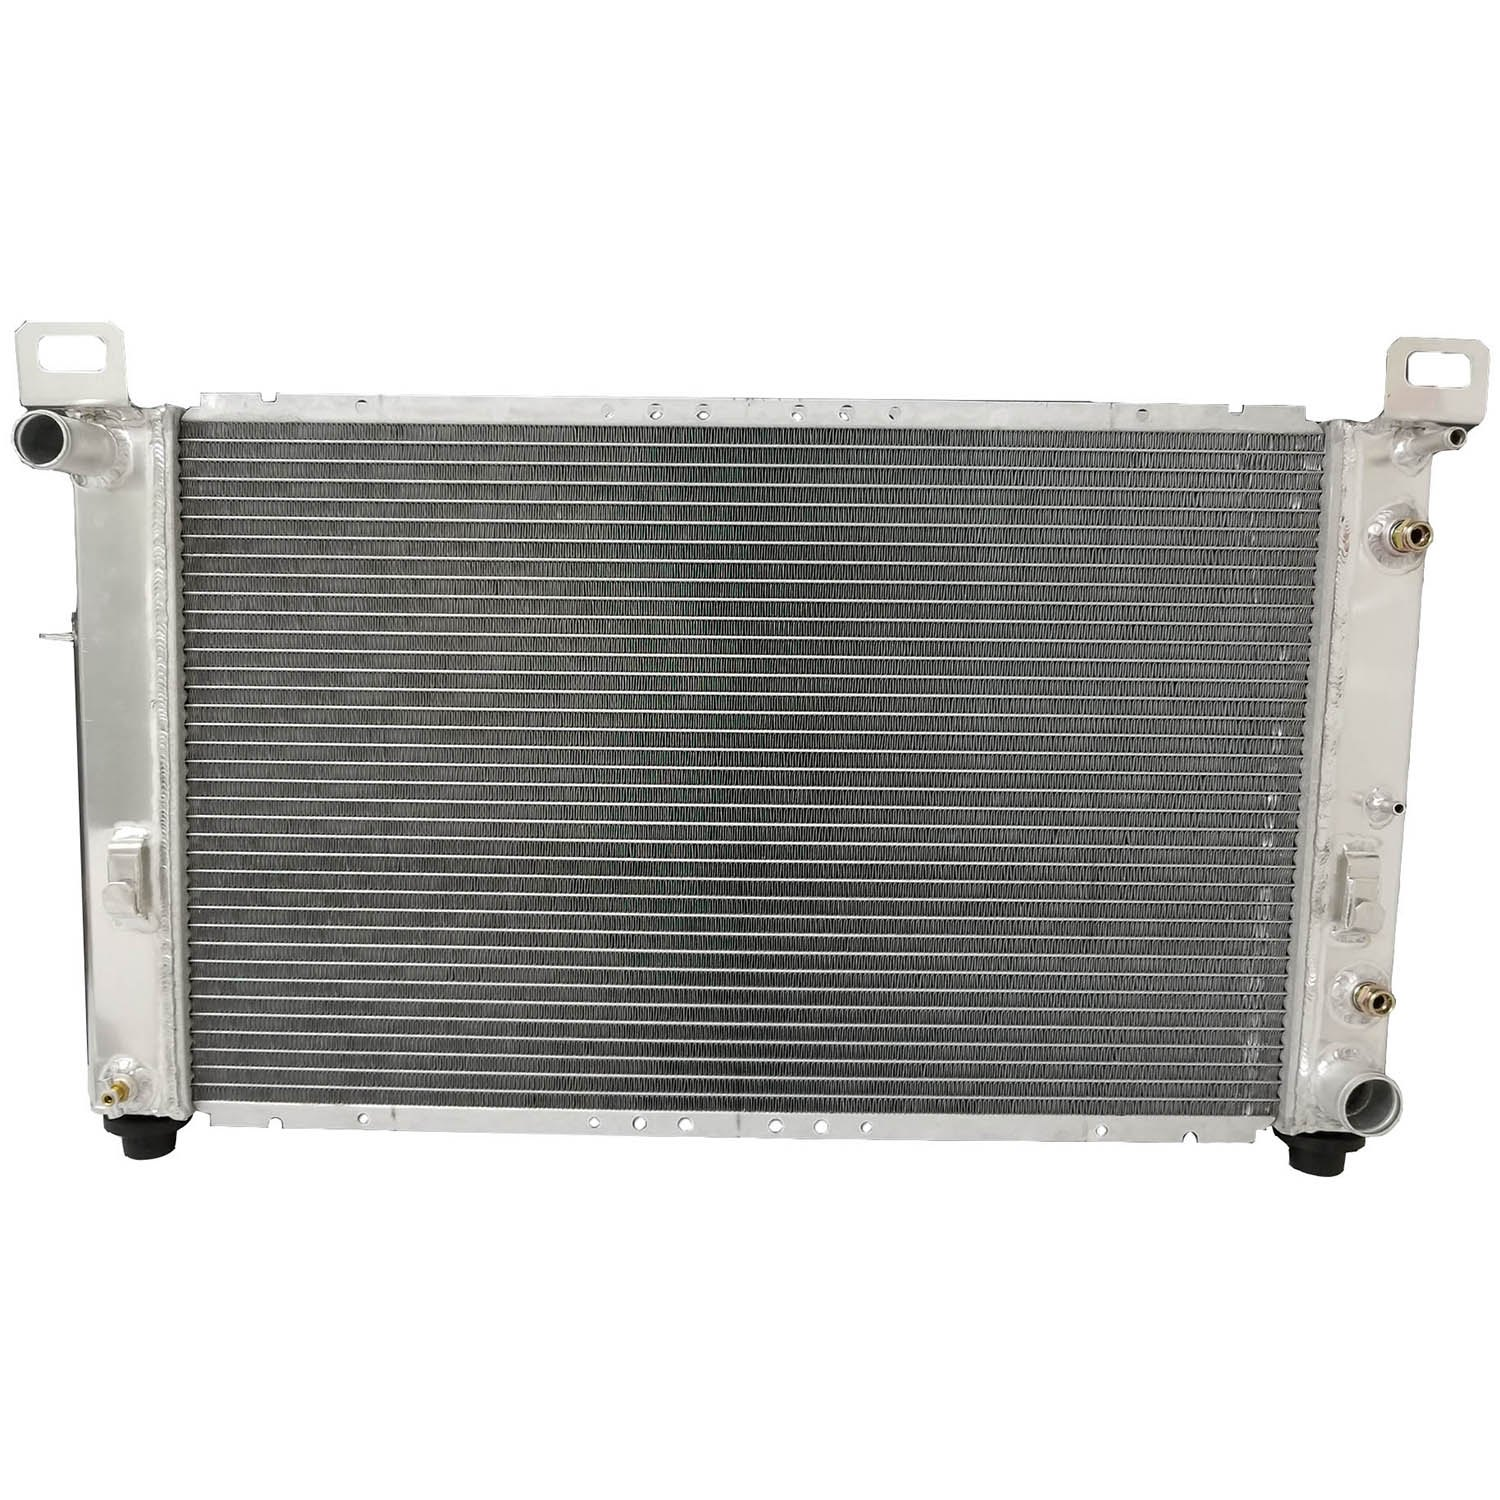 Liland global chevy silverado engine coolant radiator